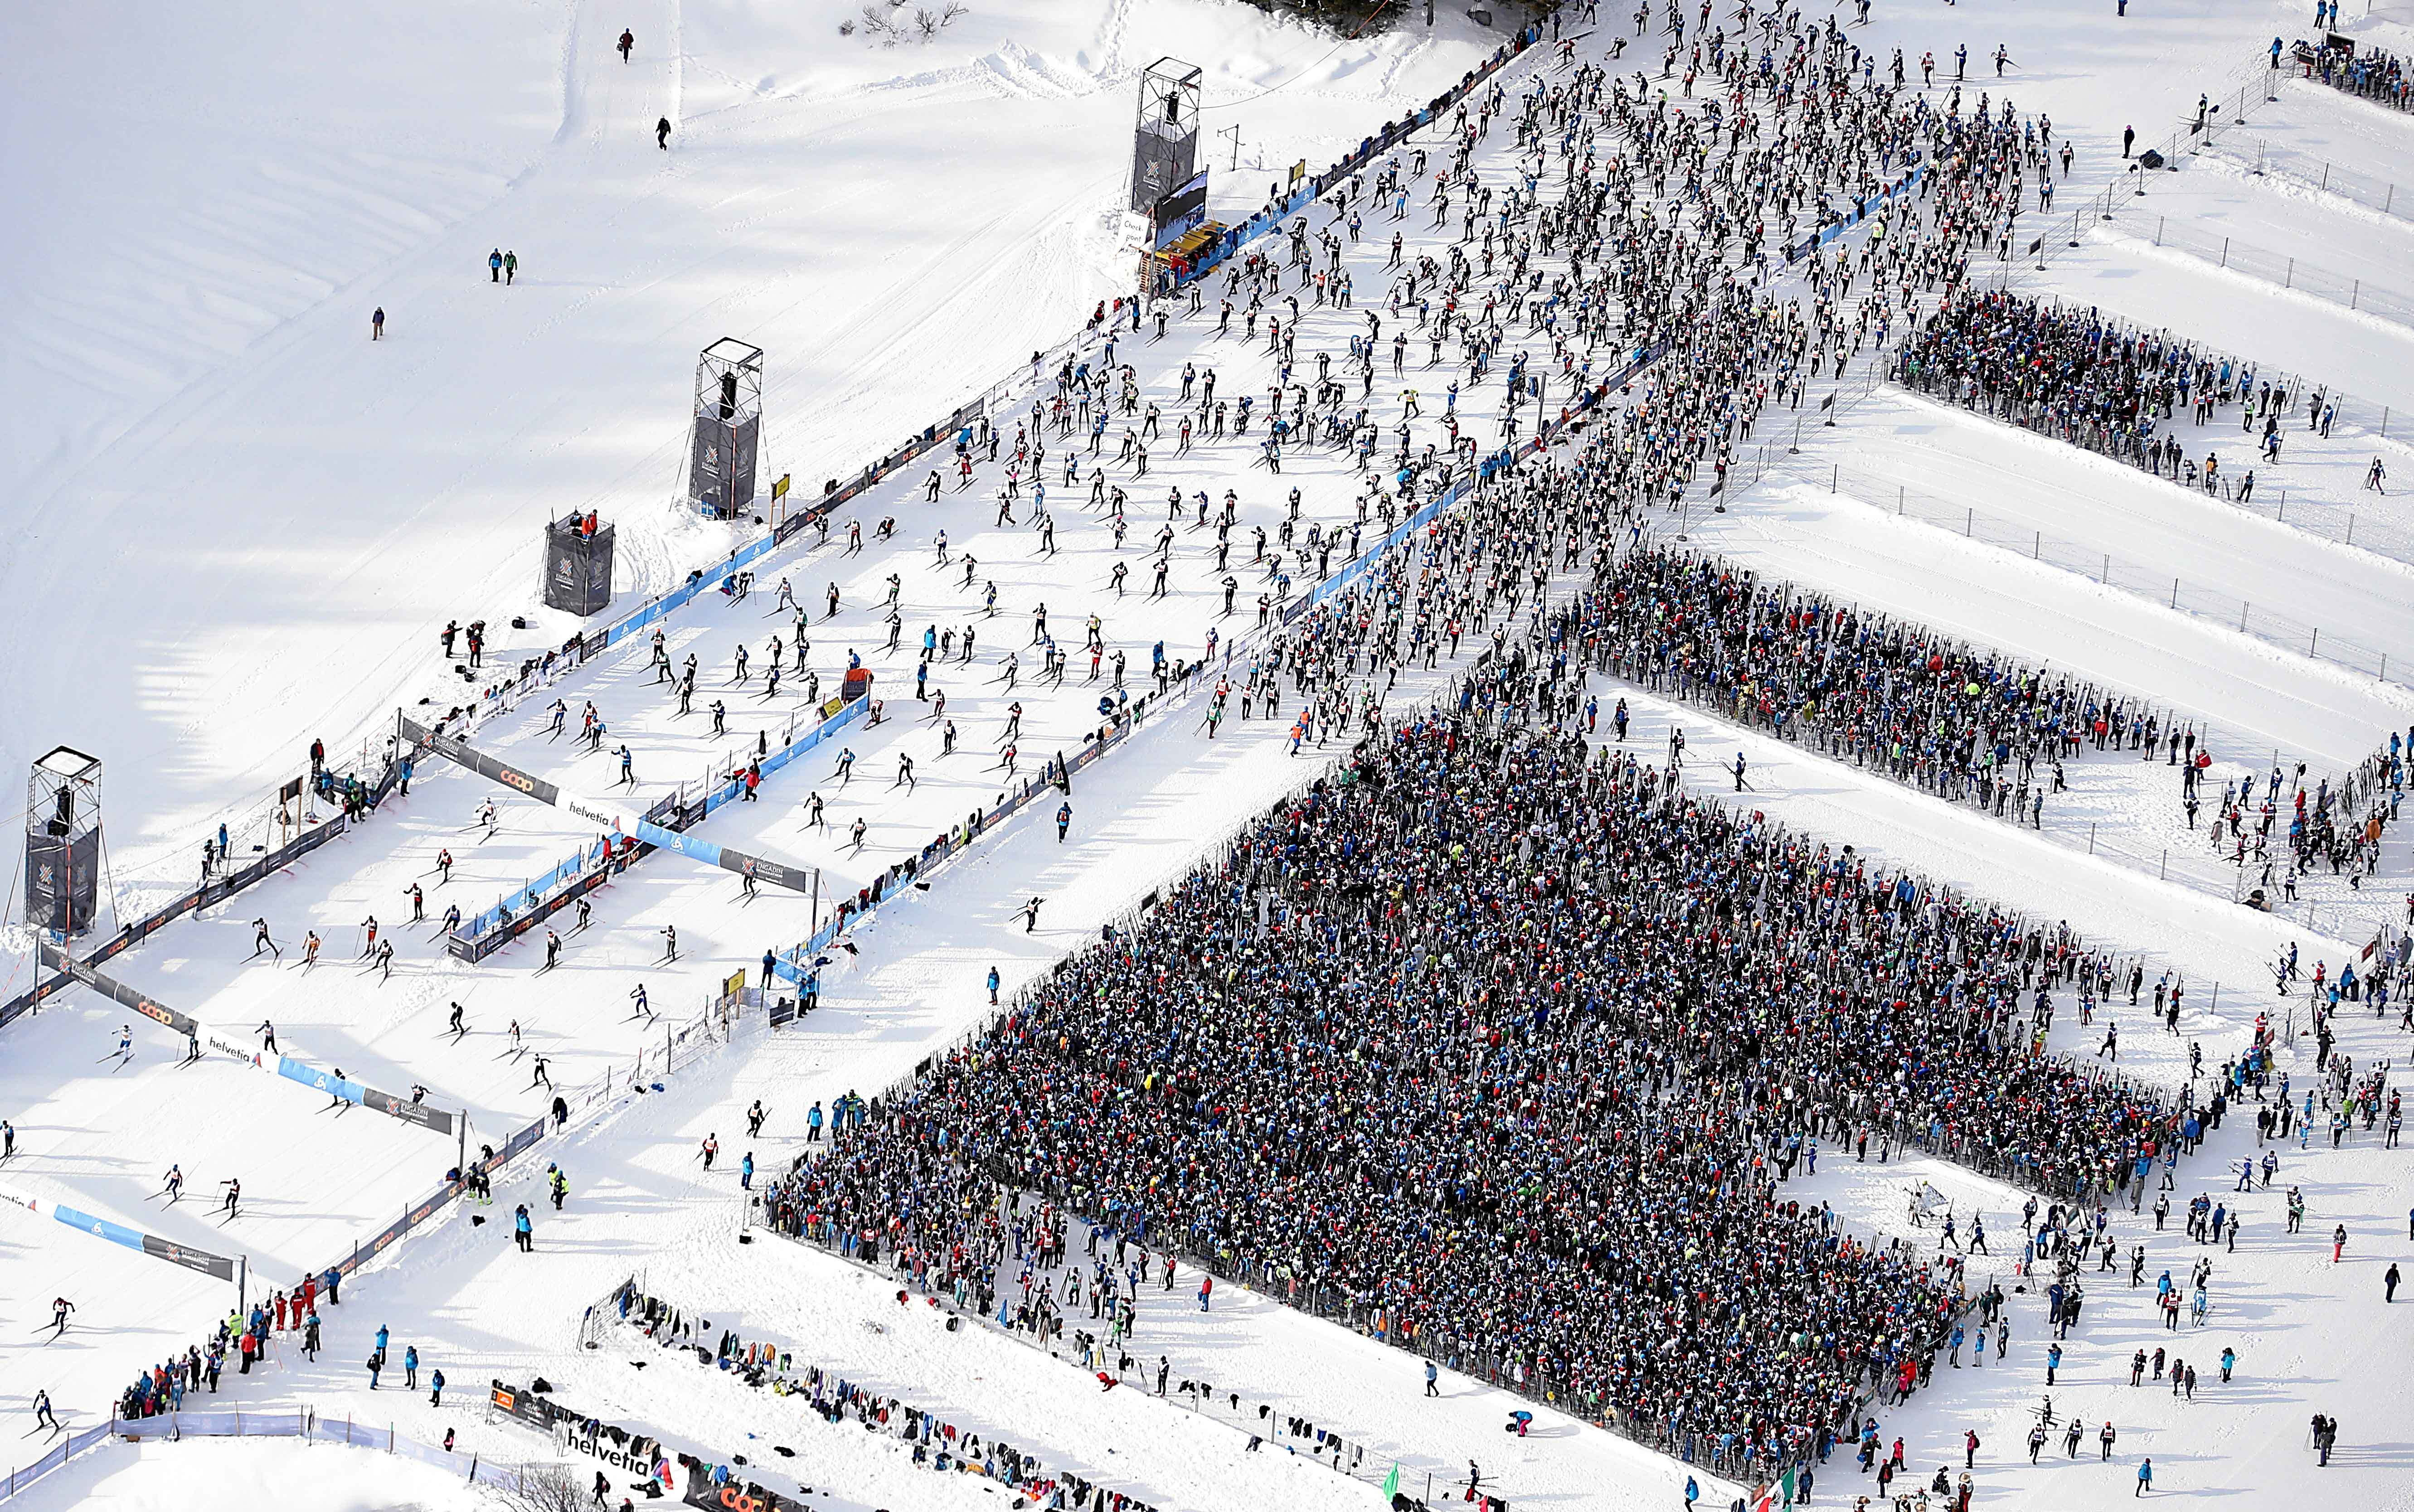 14,200 cross-country skiers from 67 countries and 42 kilometres.